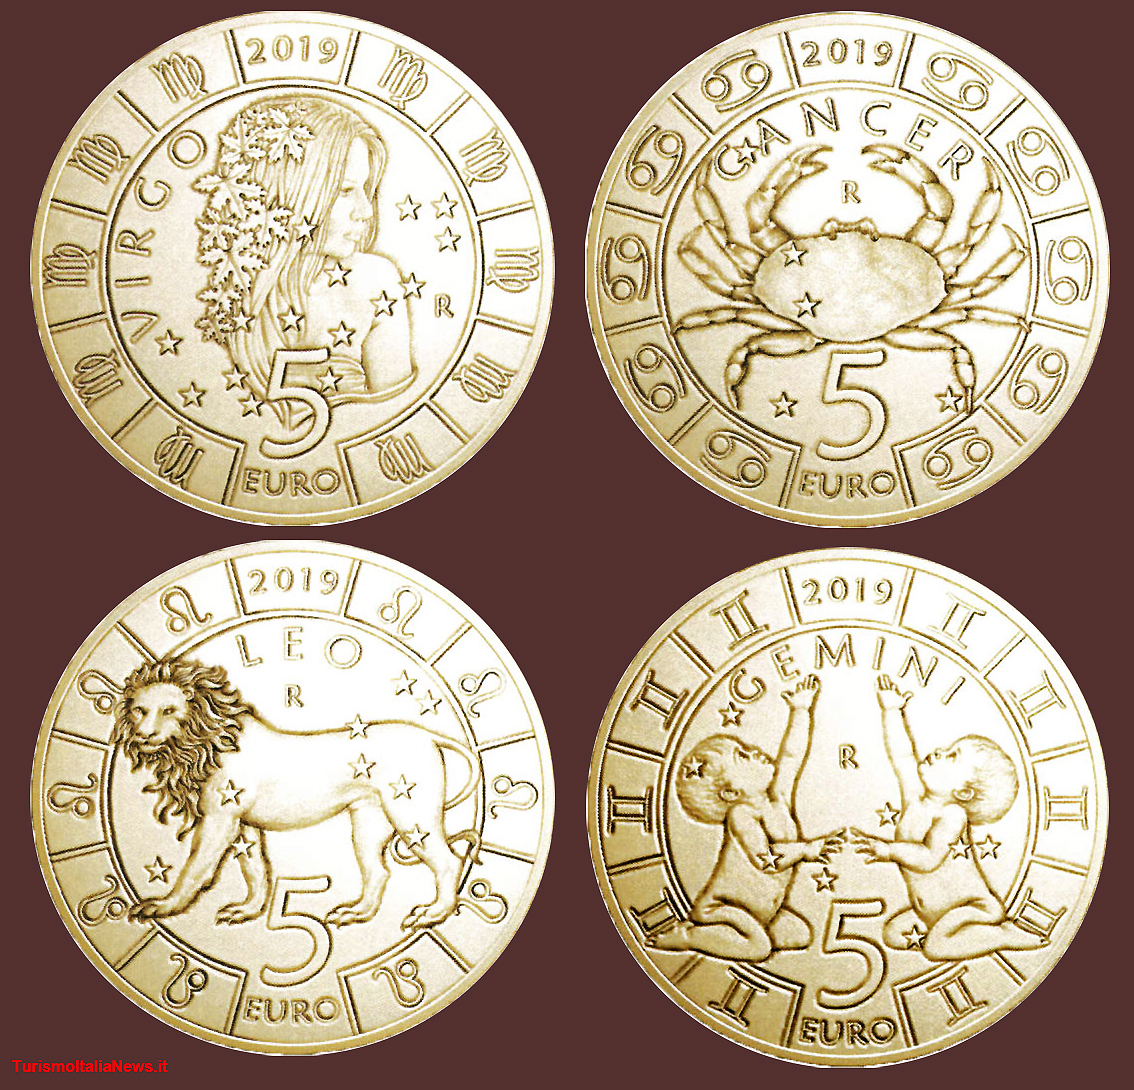 images/stories/numismatica/2019Rsm_Zodiaco.jpg